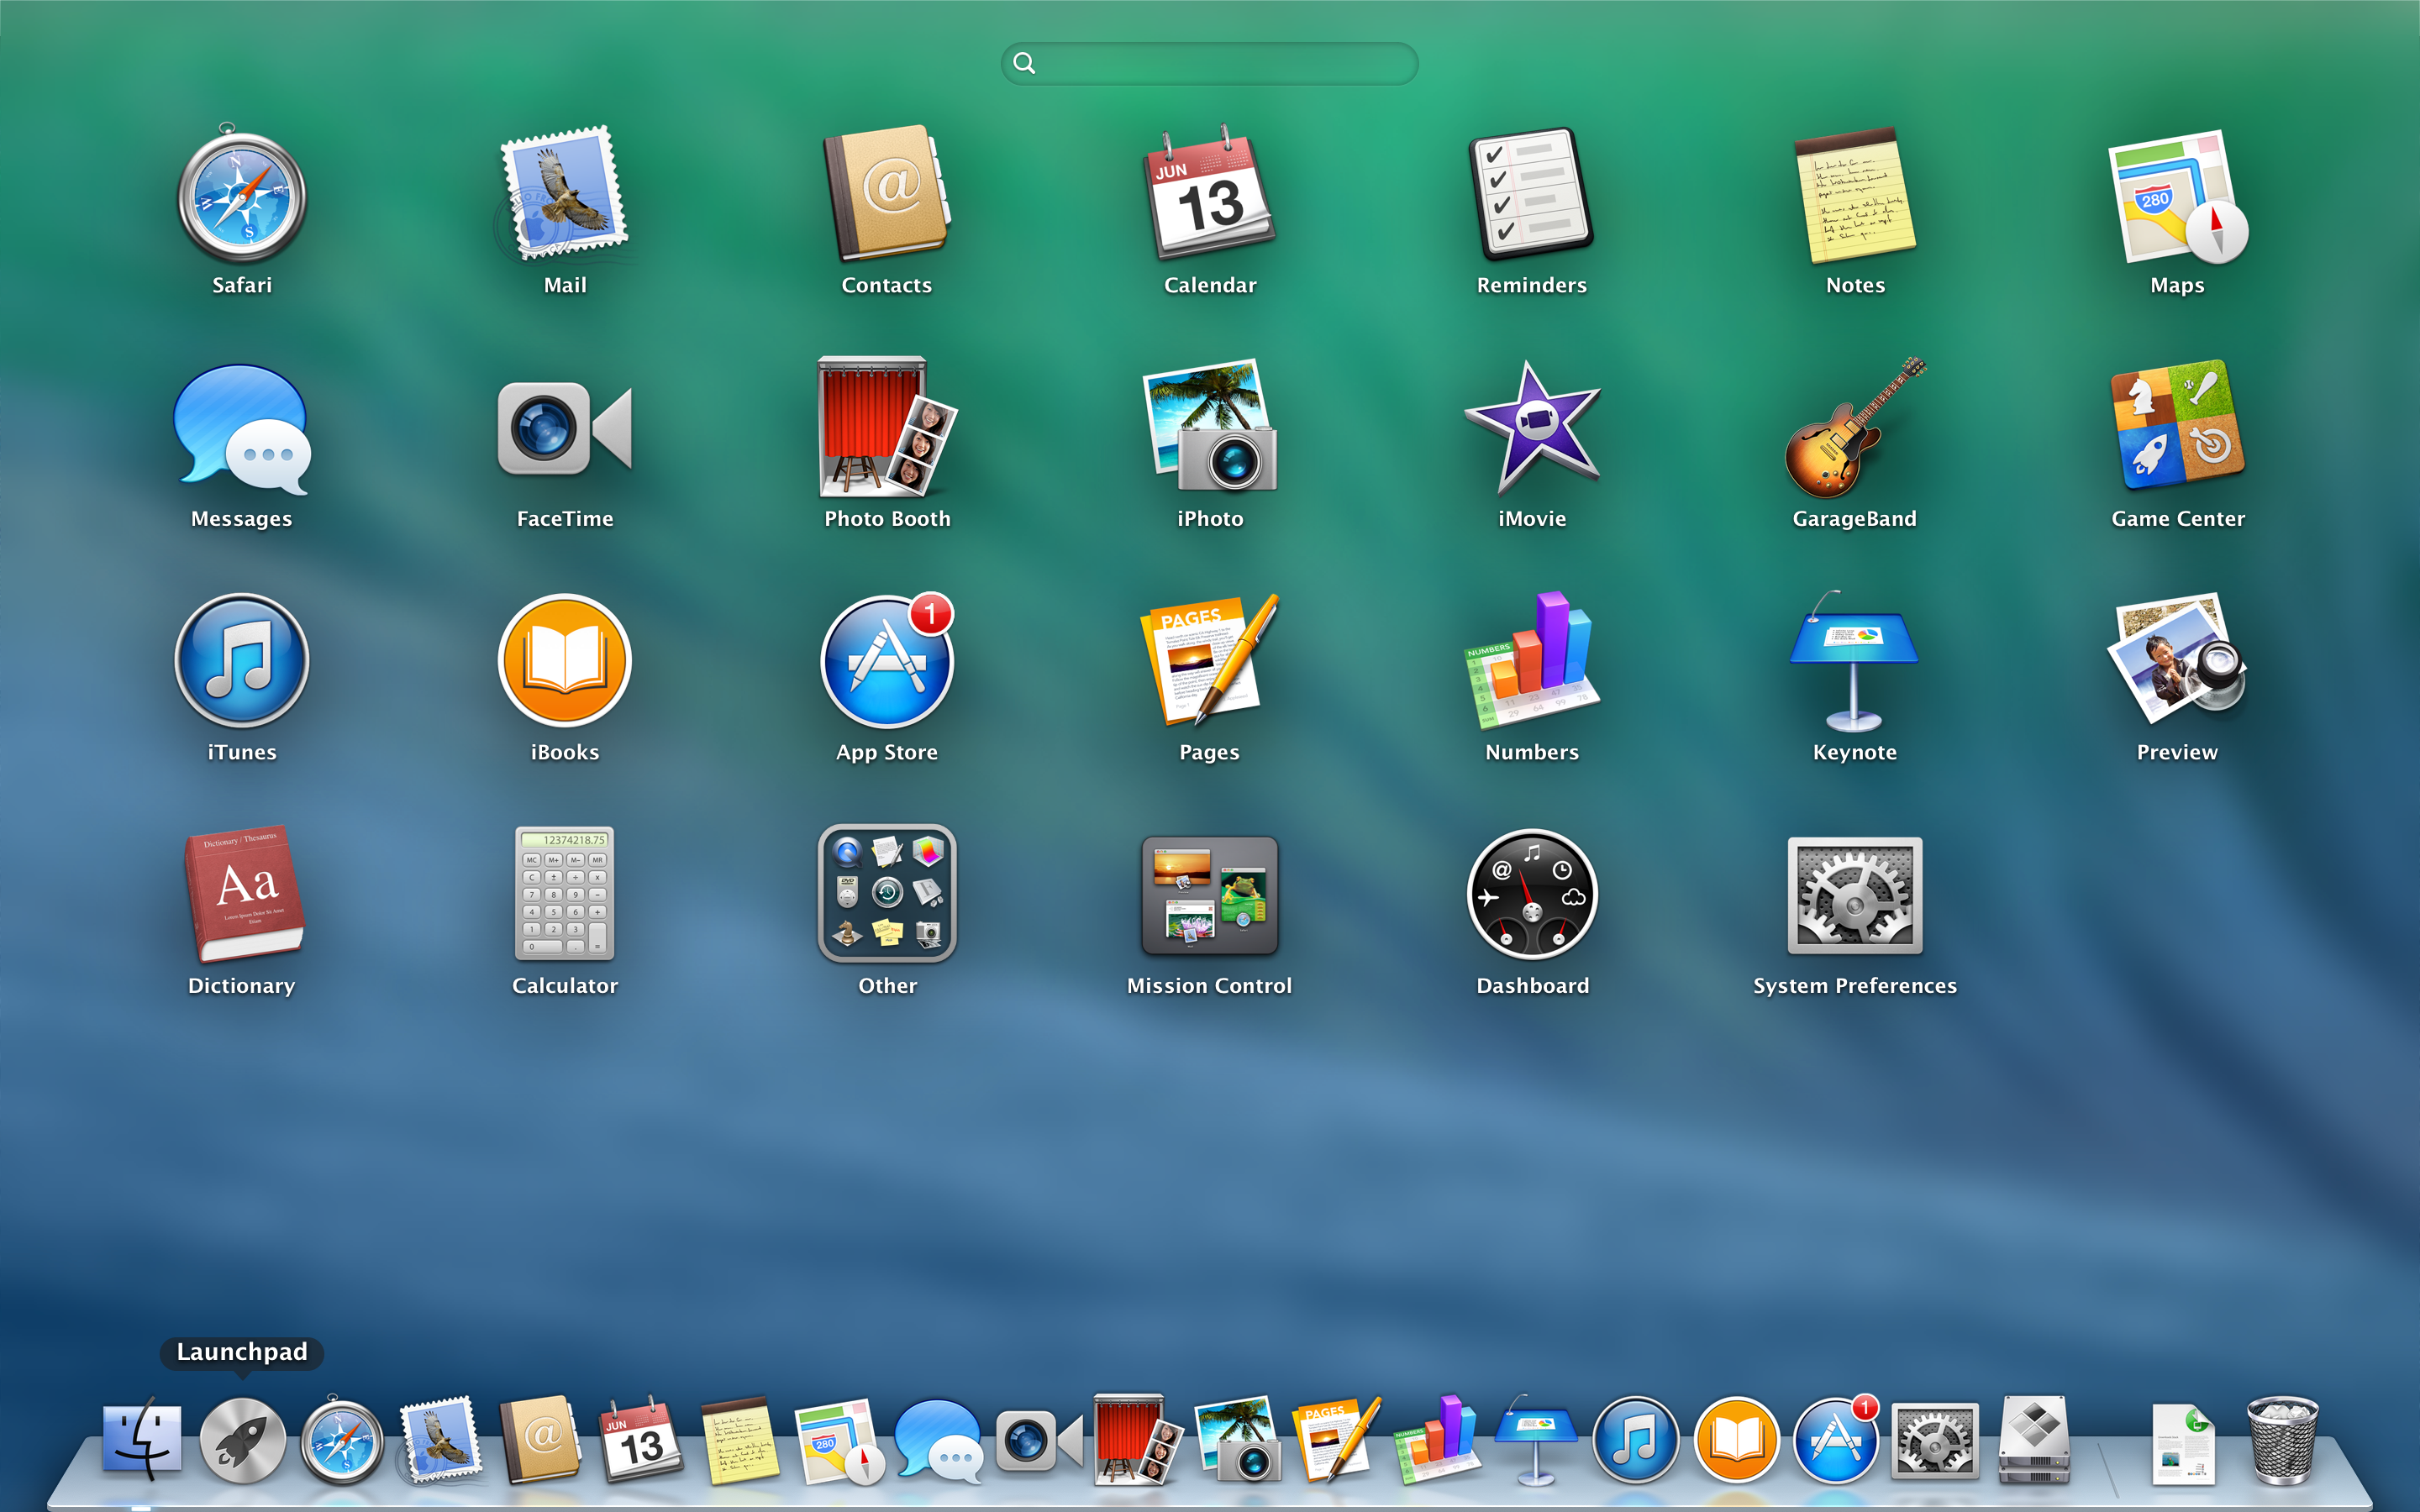 A screenshot of the Apple MacBook Pro with Retina Display's launchpad.